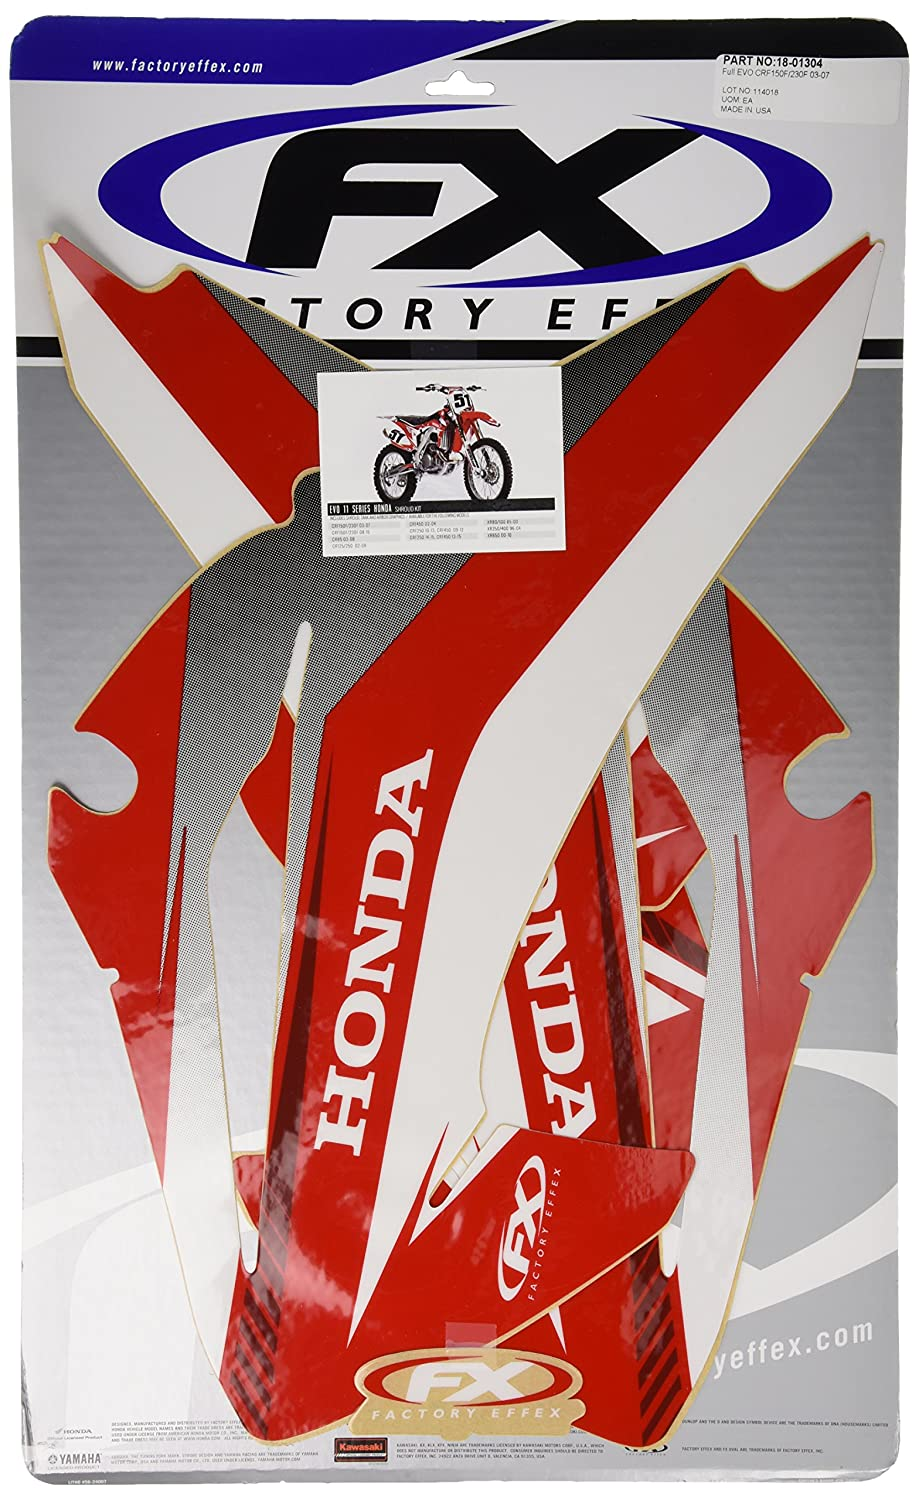 Factory Effex 18-01304 Shroud//Airbox Graphic Kit